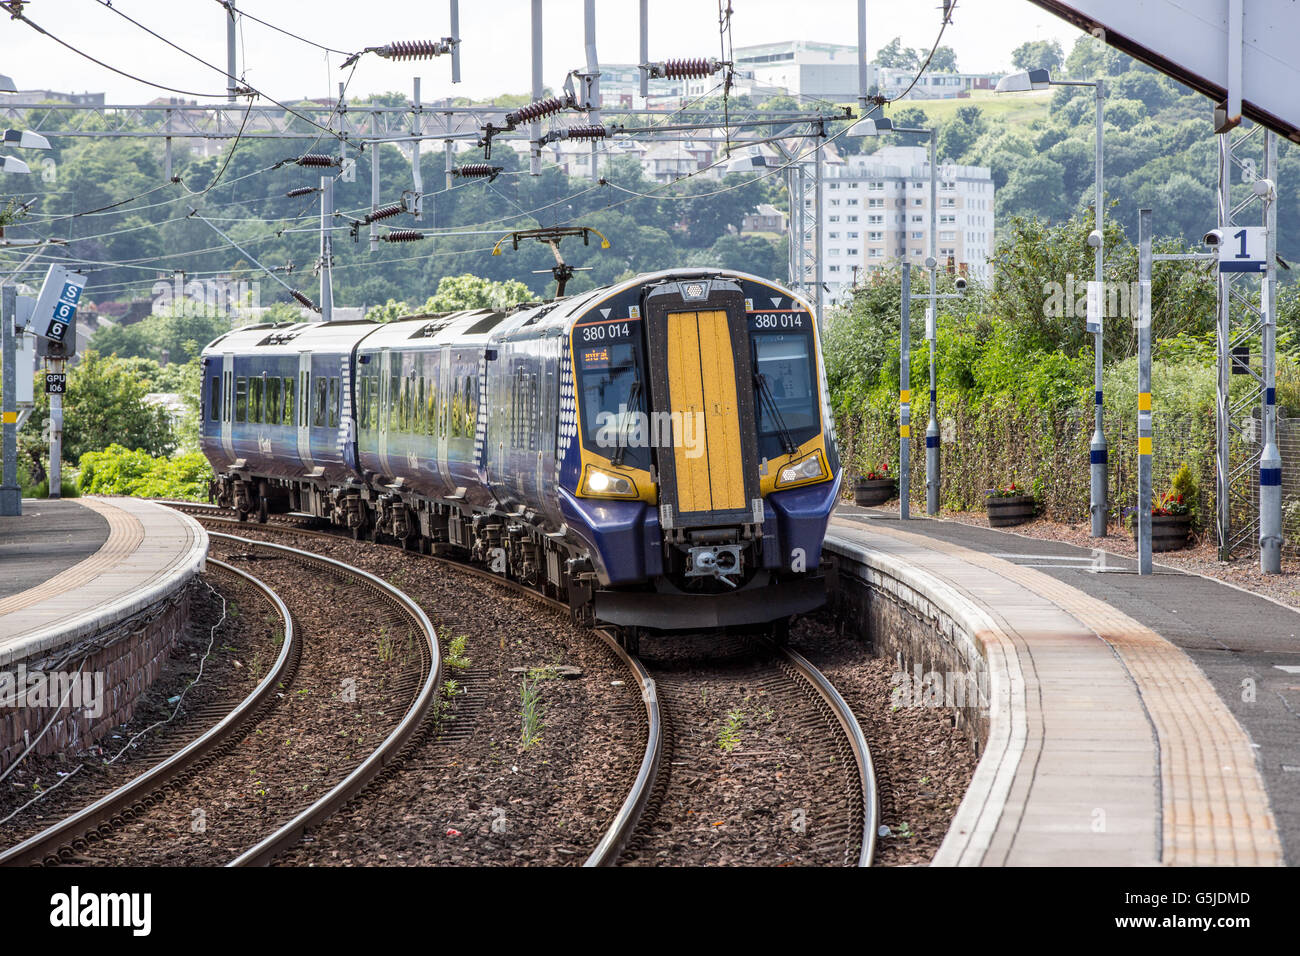 A  Class 380 electric train pulls into Fort Matilda train station. - Stock Image